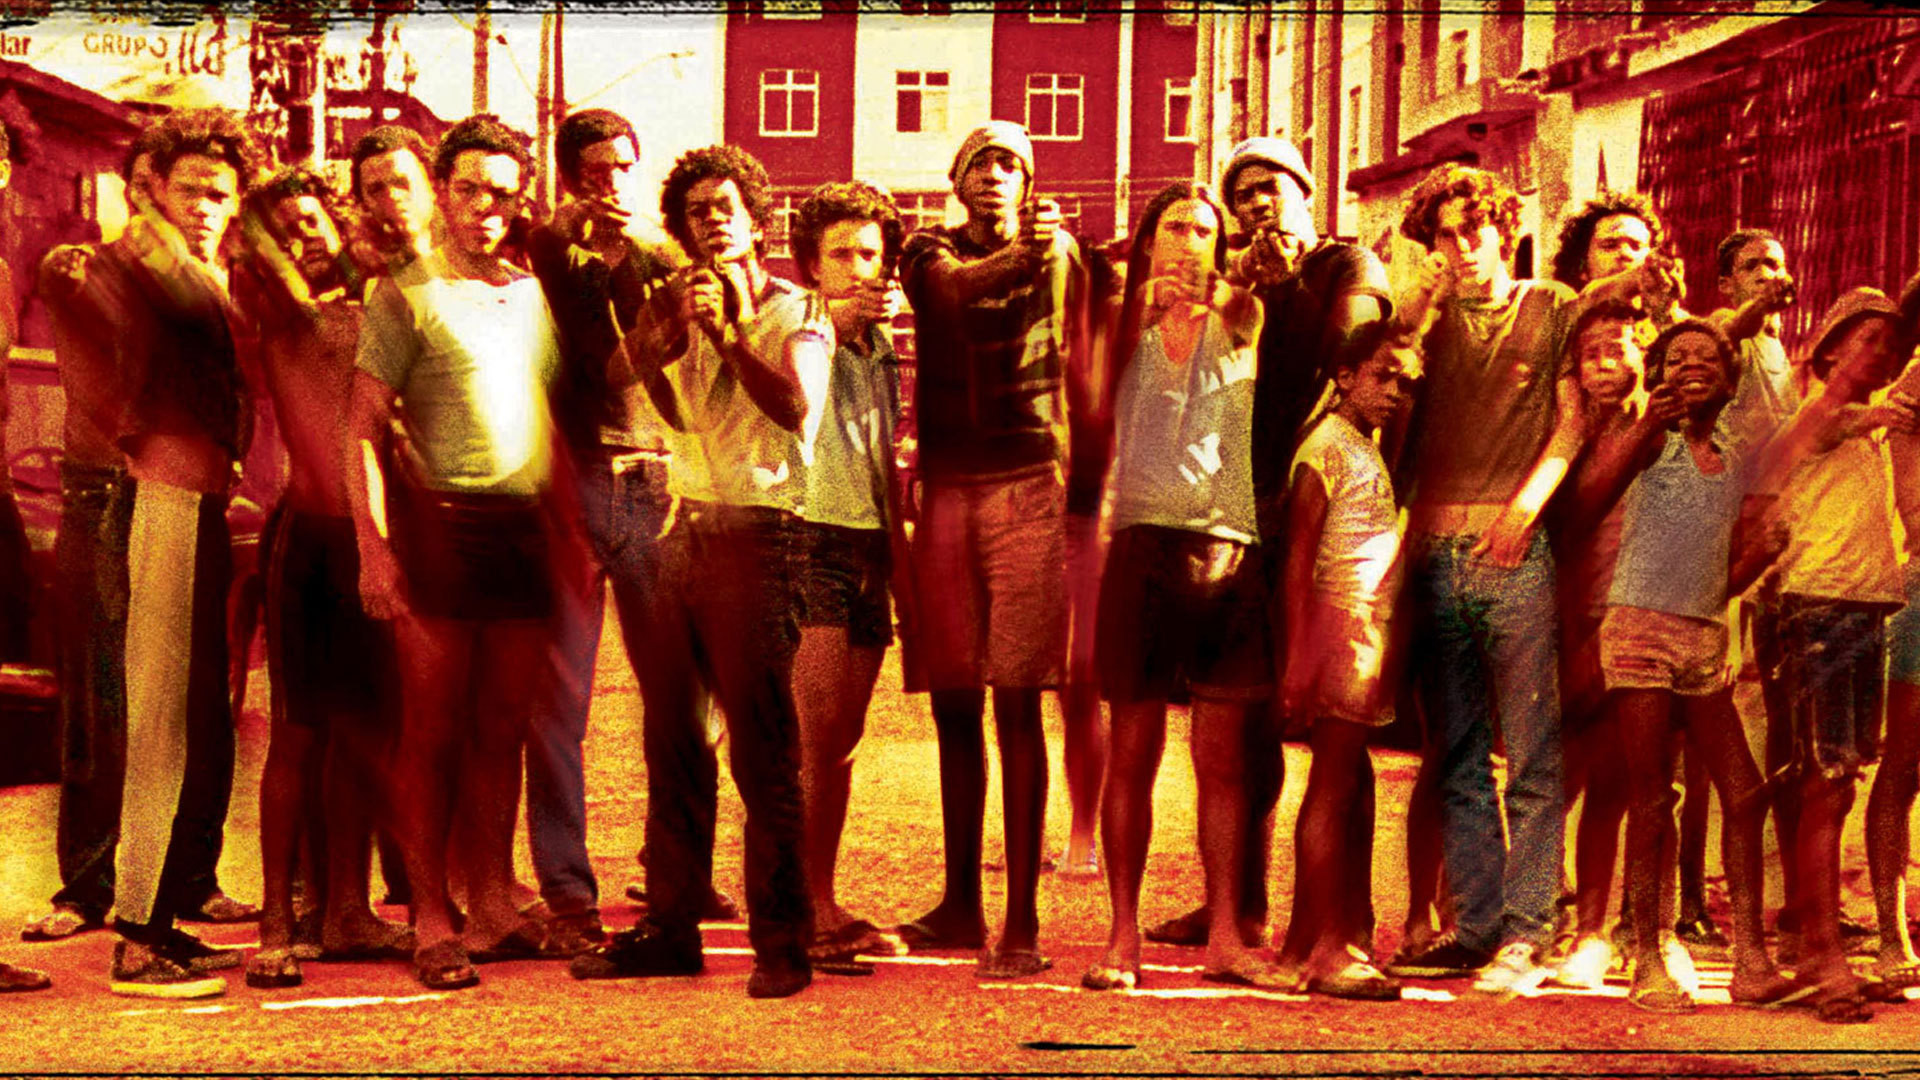 City of god lil ze